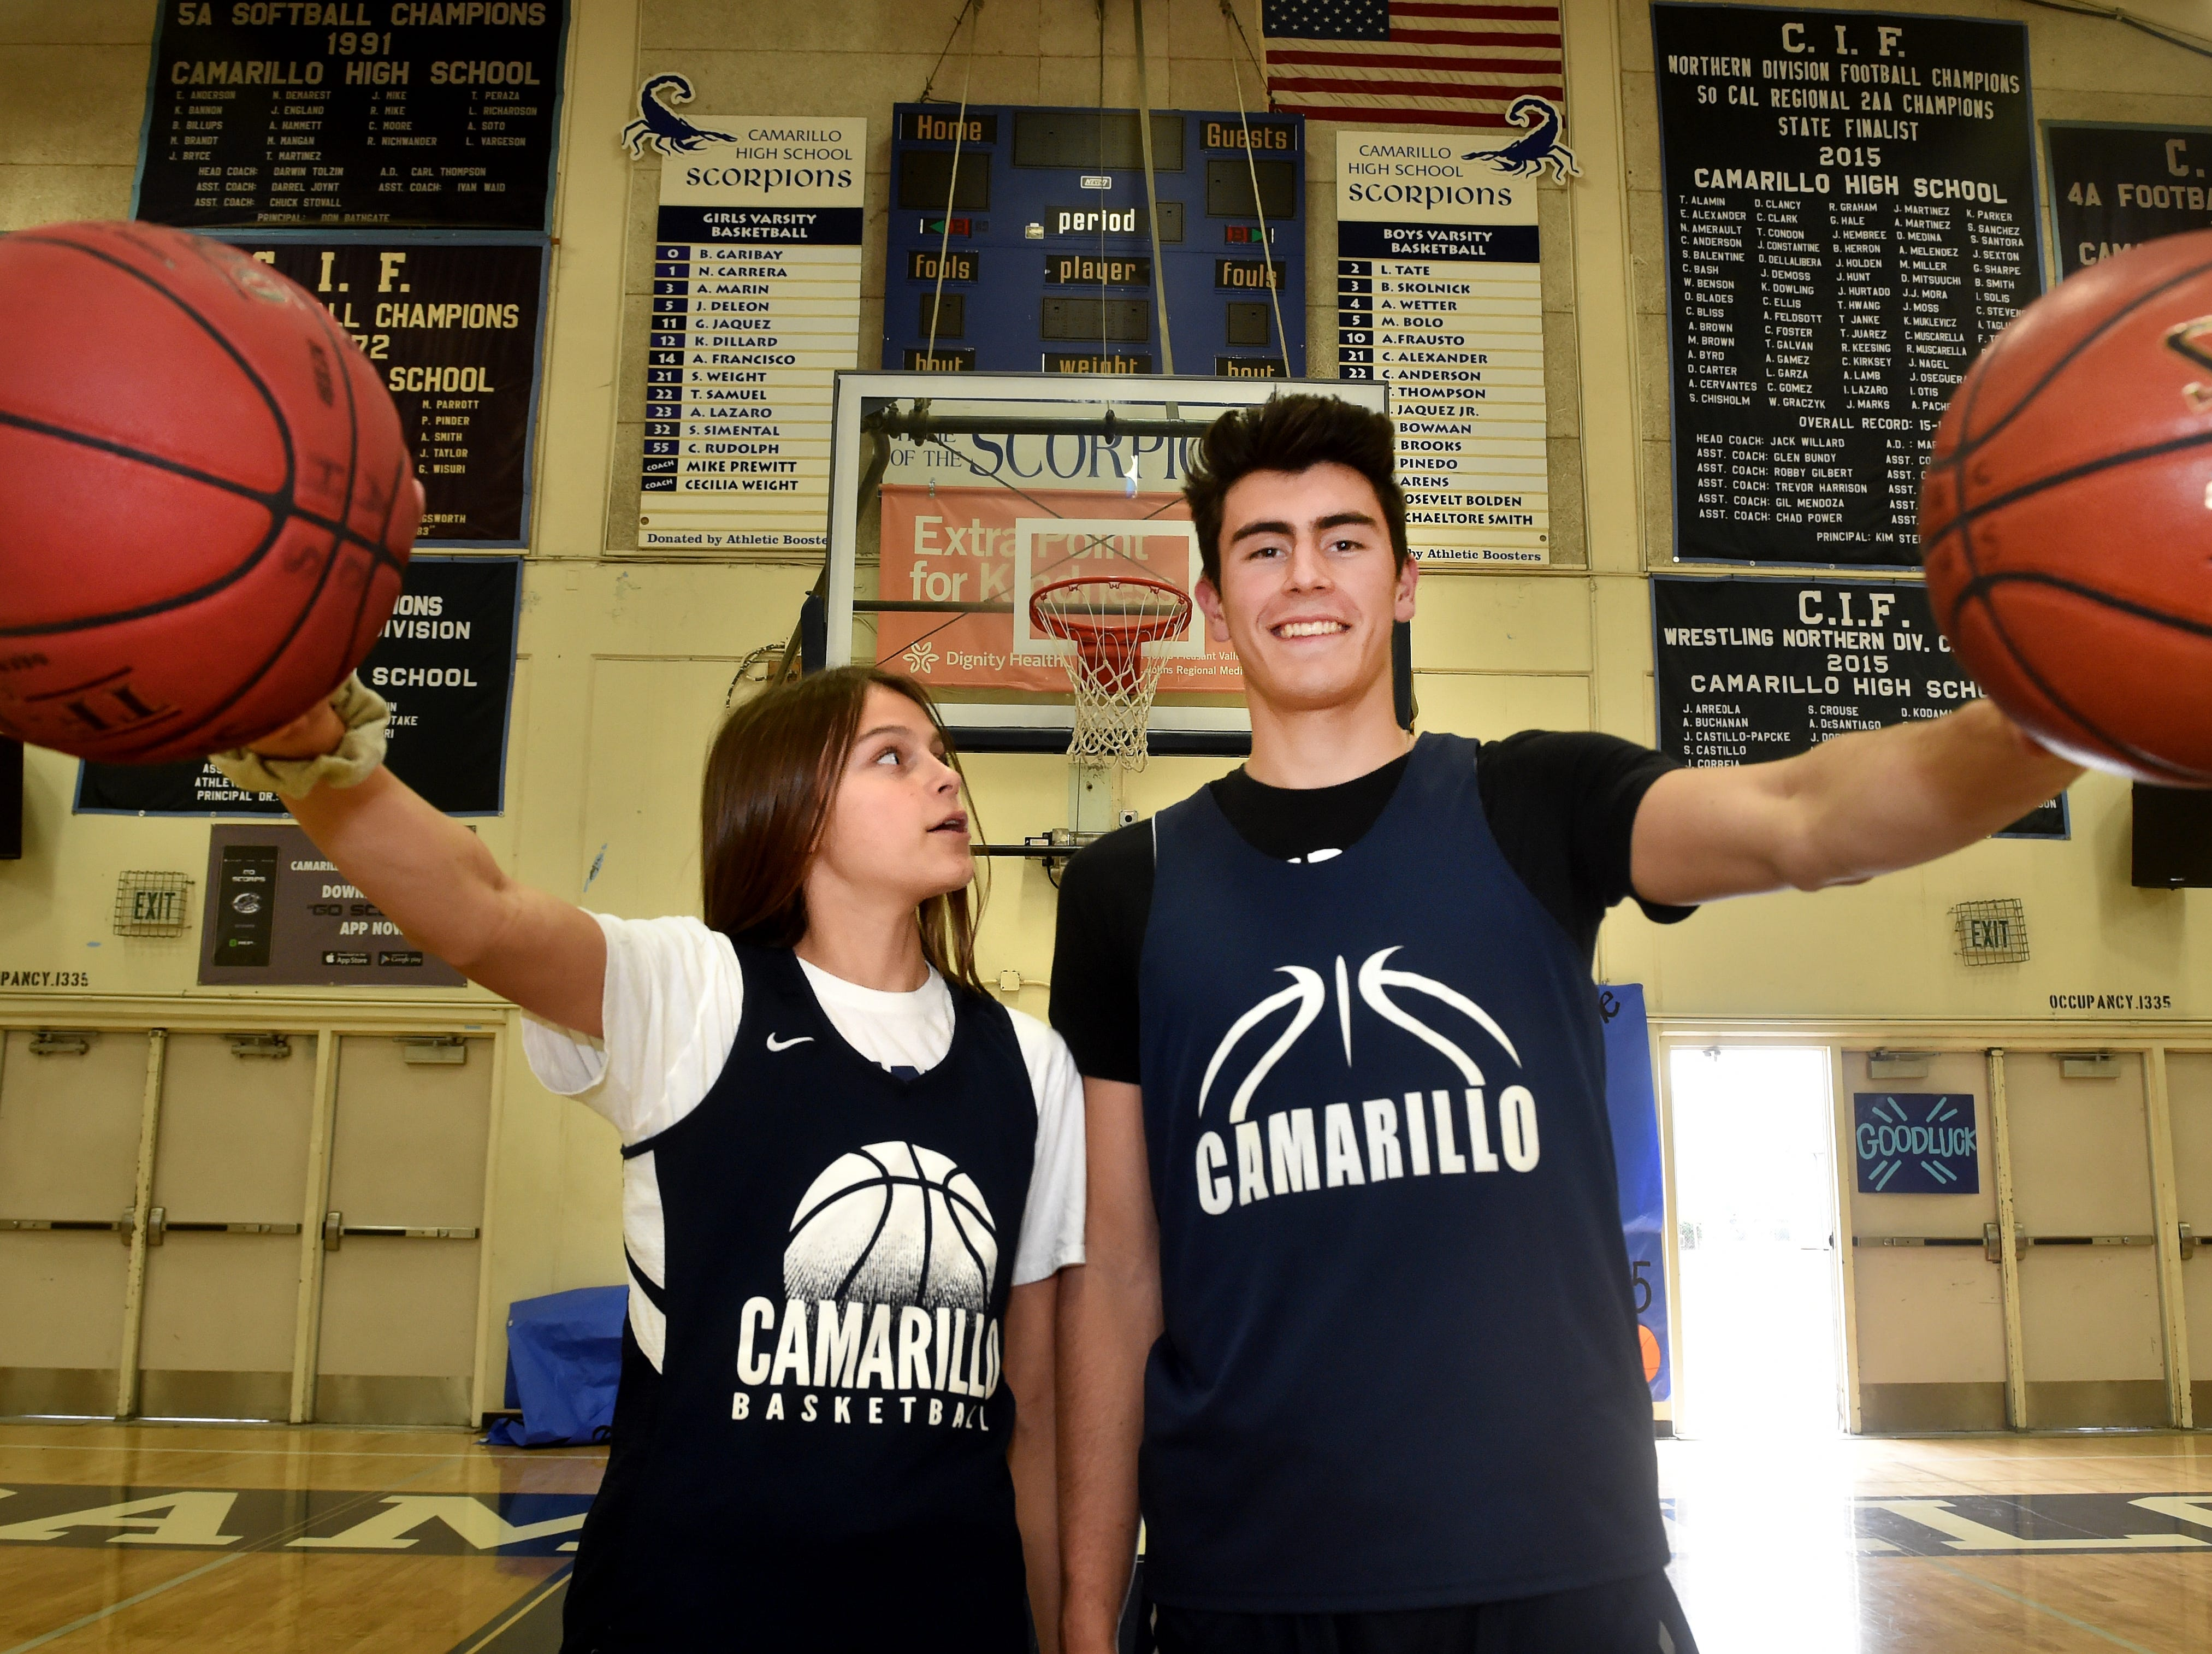 """Gabriela Jaquez, a 5-foot-9 freshman guard at Camarillo High, looks up to her older brother Jaime Jr., a 6-7 senior star who is headed to UCLA, on and off the basketball court. """"I've seen the way my brother treats the little kids who approach him. I hope I can do that. I want little kids to be inspired,"""" Gabriella says."""